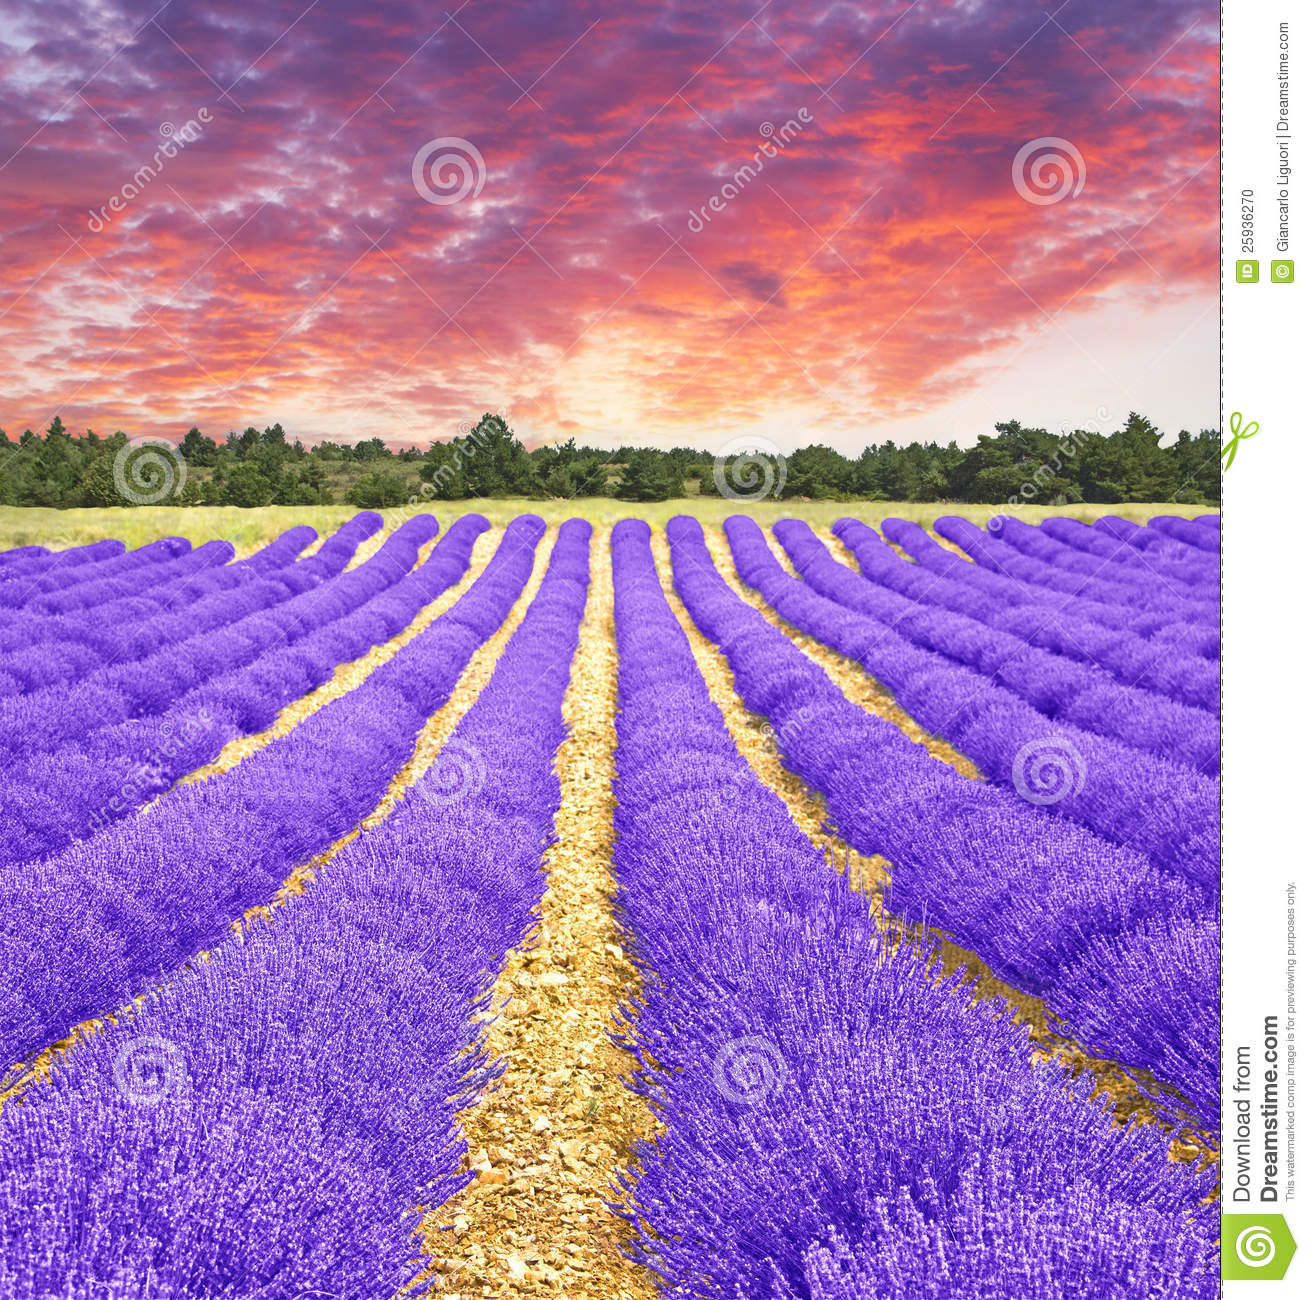 Lavender Field Sunrise Stock Photos, Images, & Pictures.